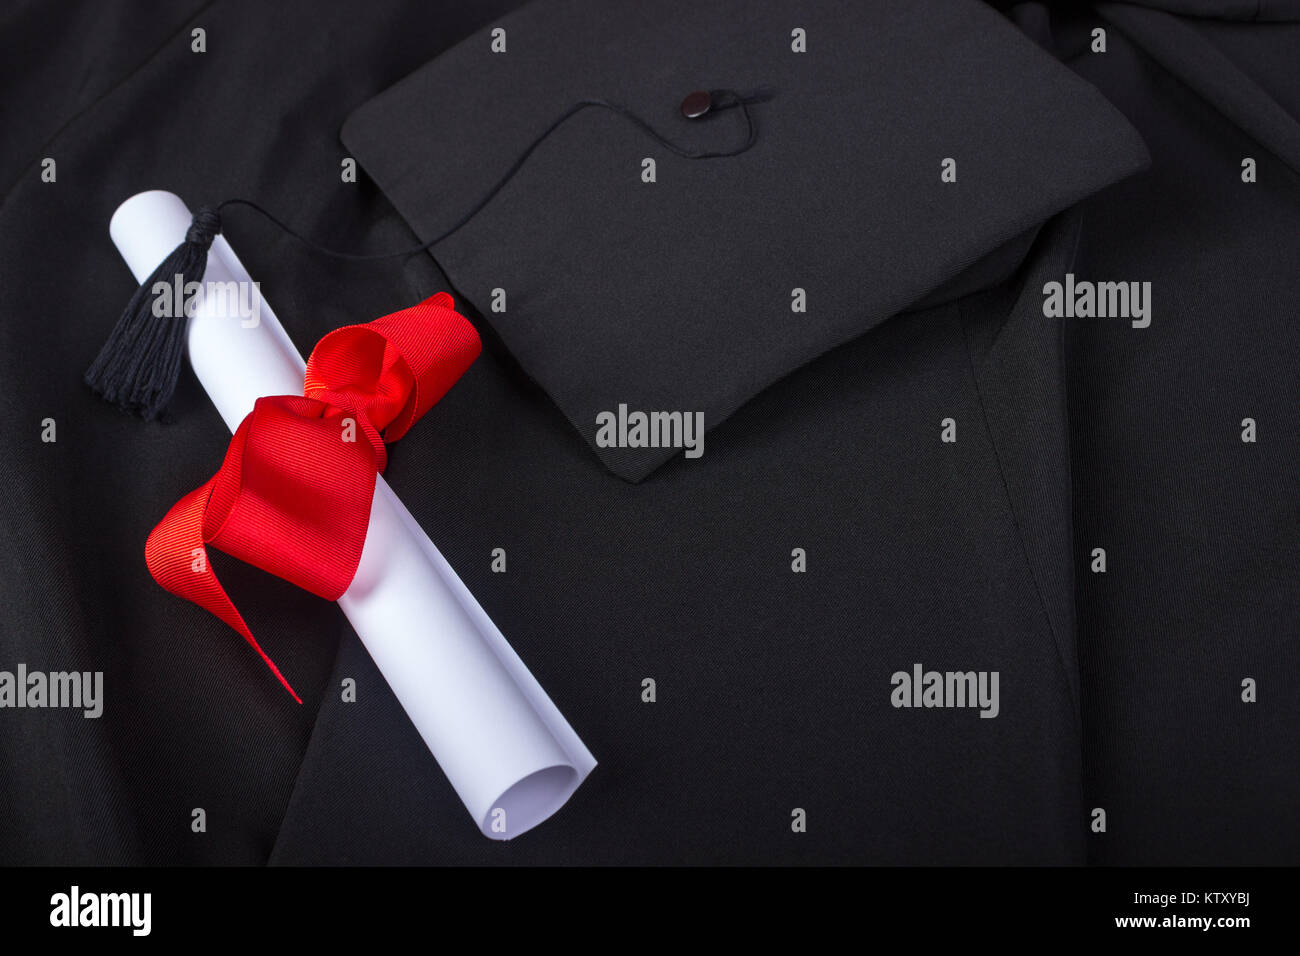 Graduation Day. A gown, graduation cap, and diploma and laid out ready for graduation day. - Stock Image